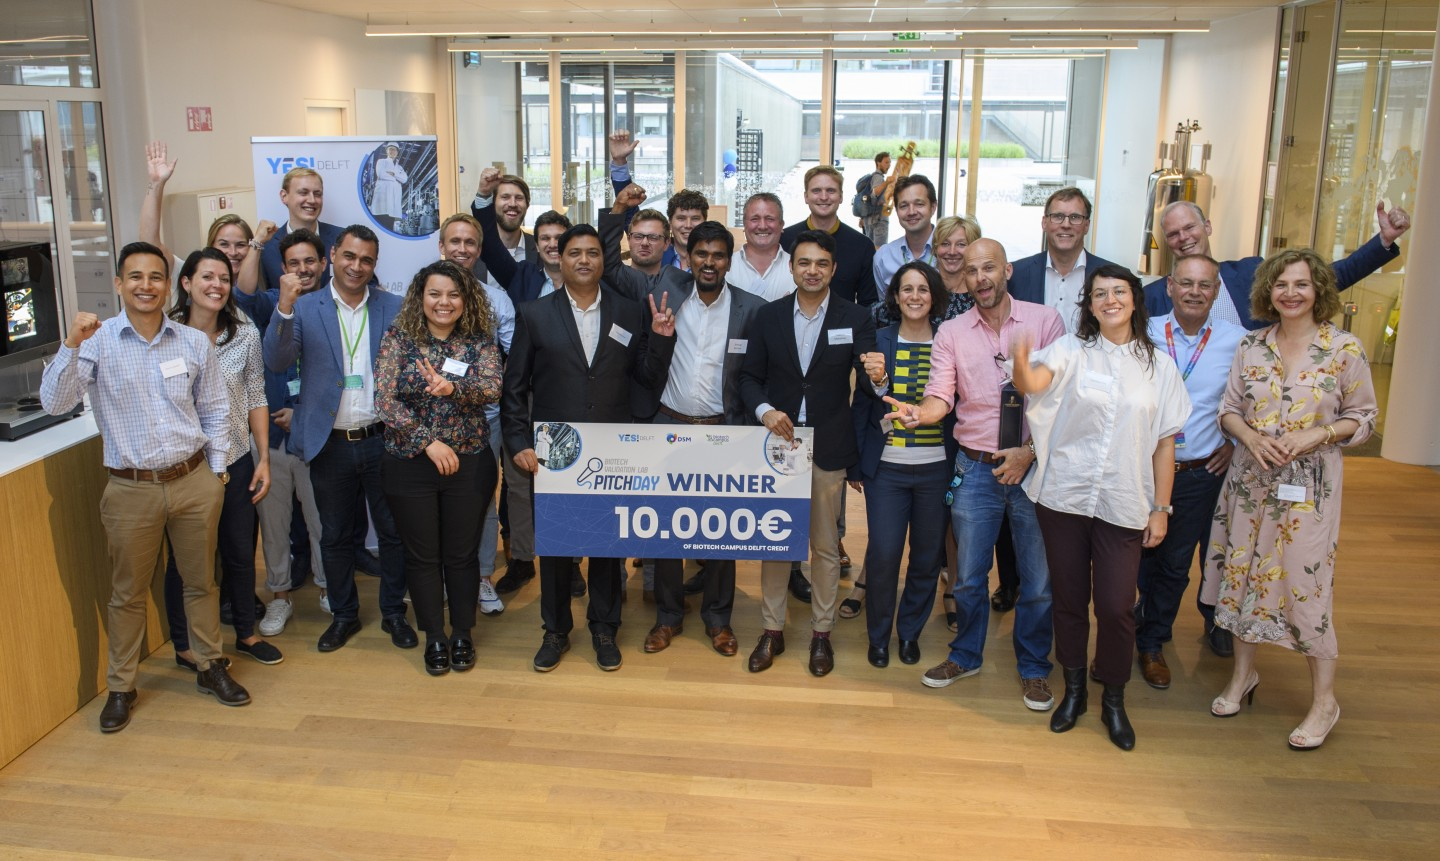 19th of July marked the end of a two-month training period for six promising biotech start-ups.